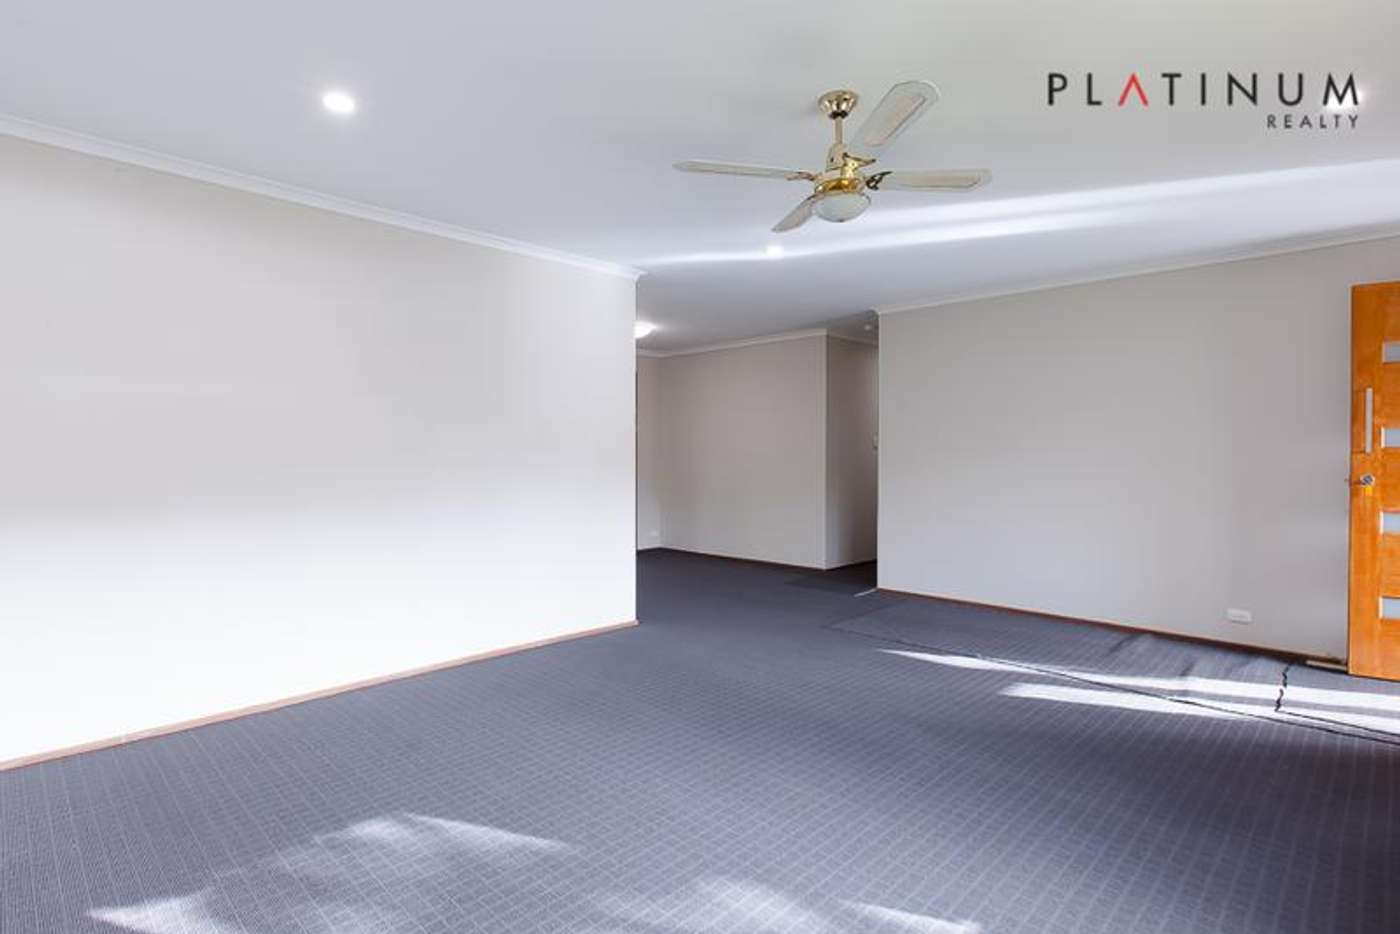 Sixth view of Homely house listing, 134 Government Road, Labrador QLD 4215